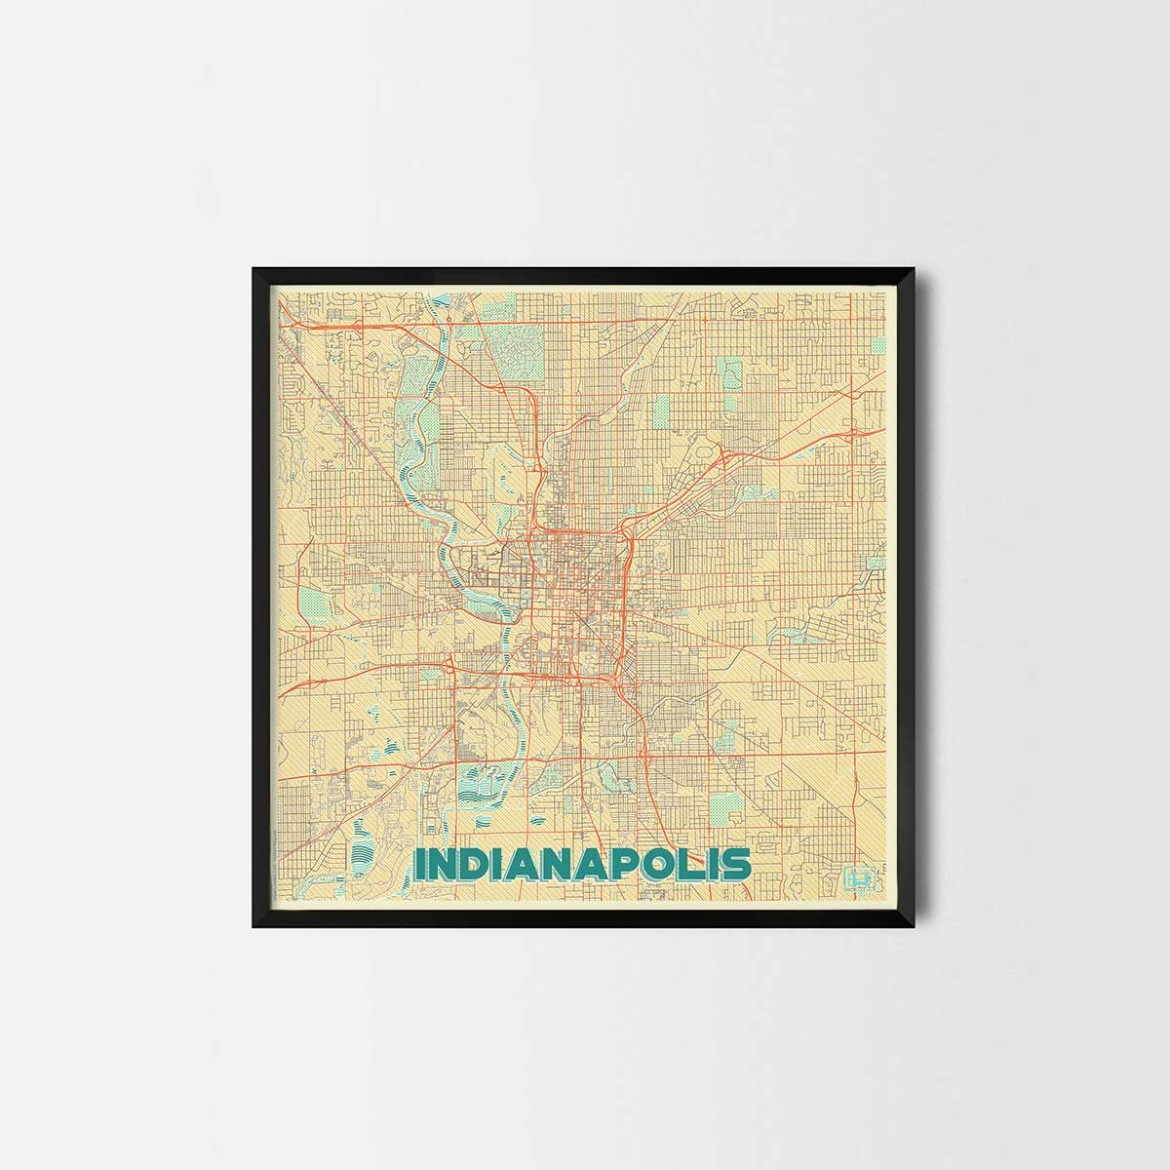 Indianapolis gift - Map Art Prints and Posters, Home Decor Gifts